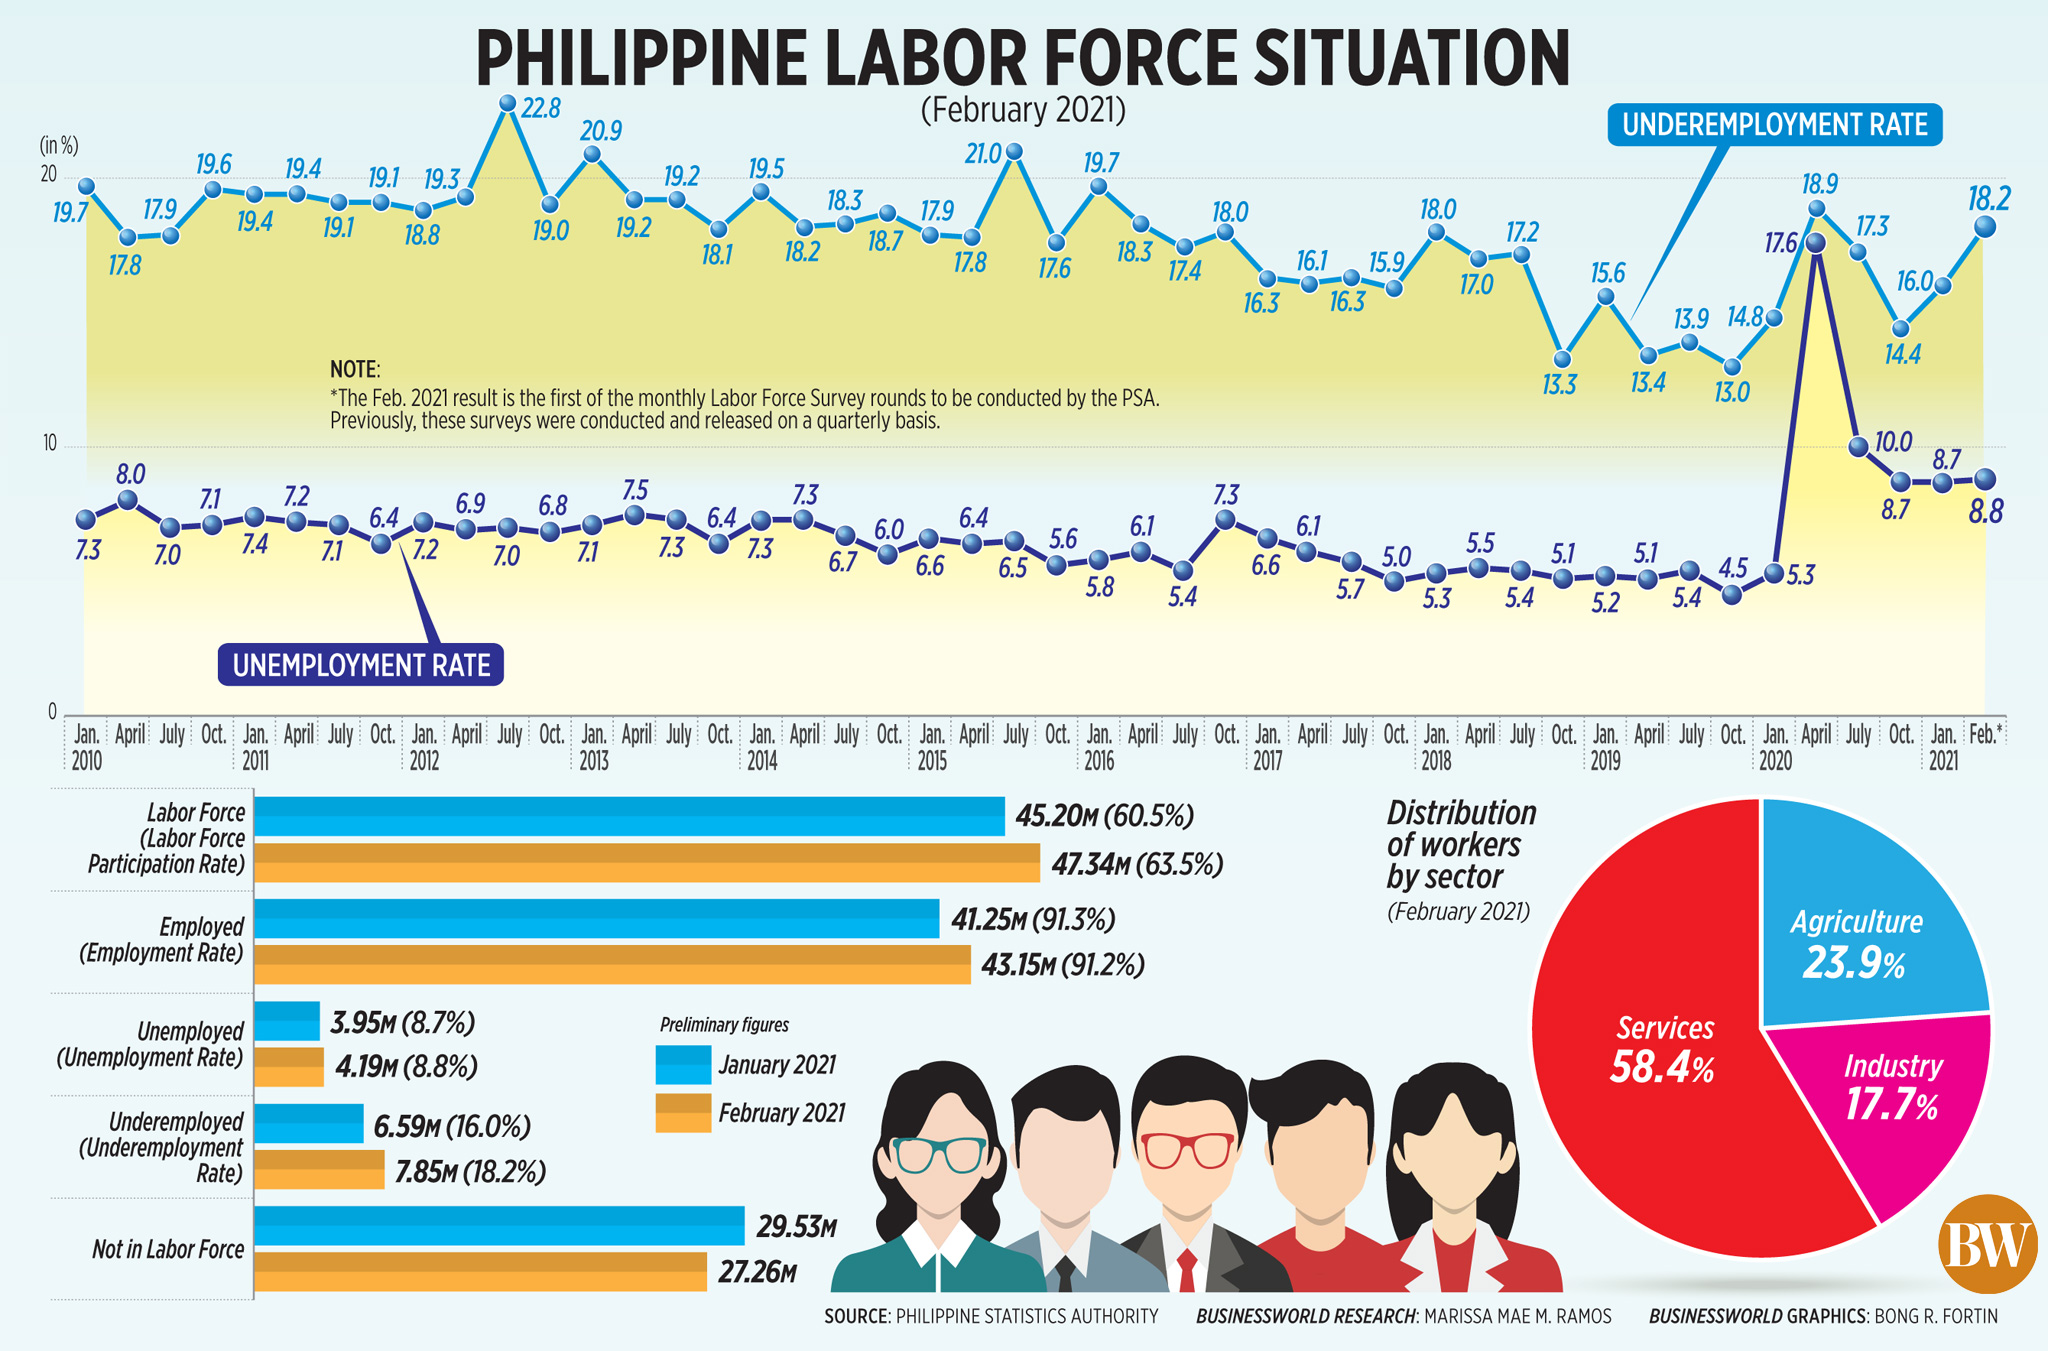 Philippine labor force situation (Feb. 2021)